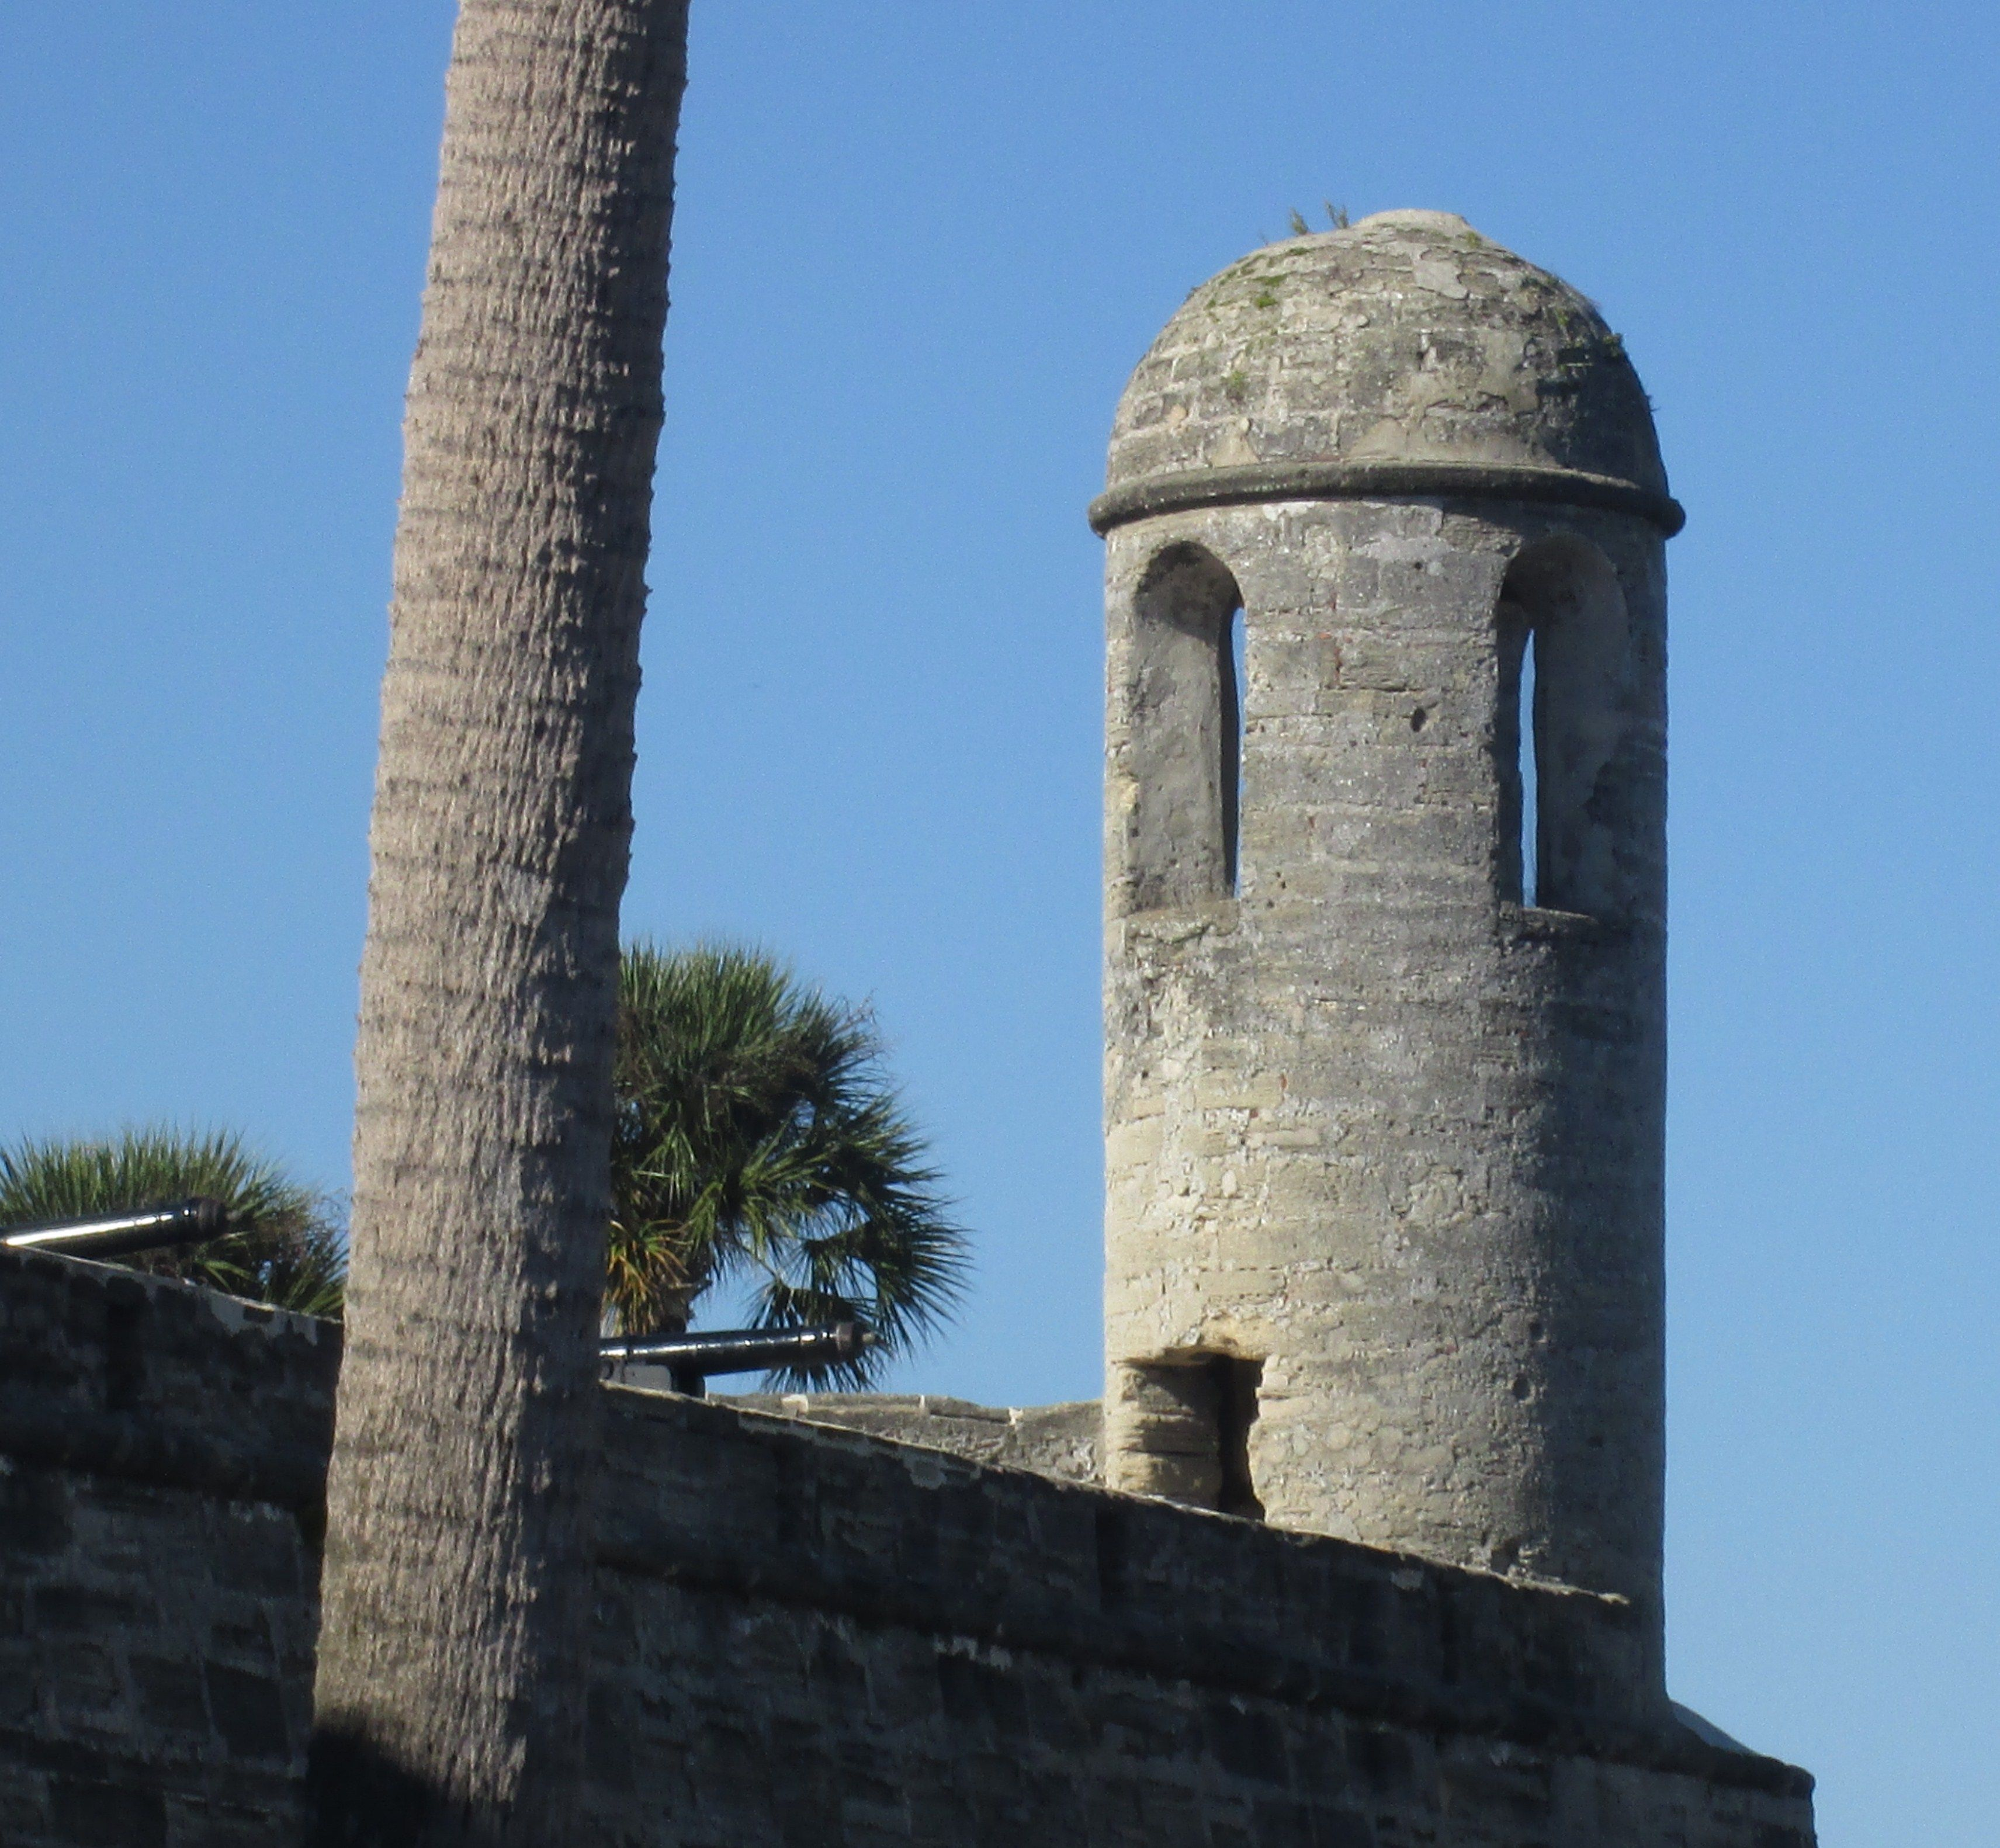 The tower at St. Augustine Fort, St. Augustine, Florida - Oct 2014